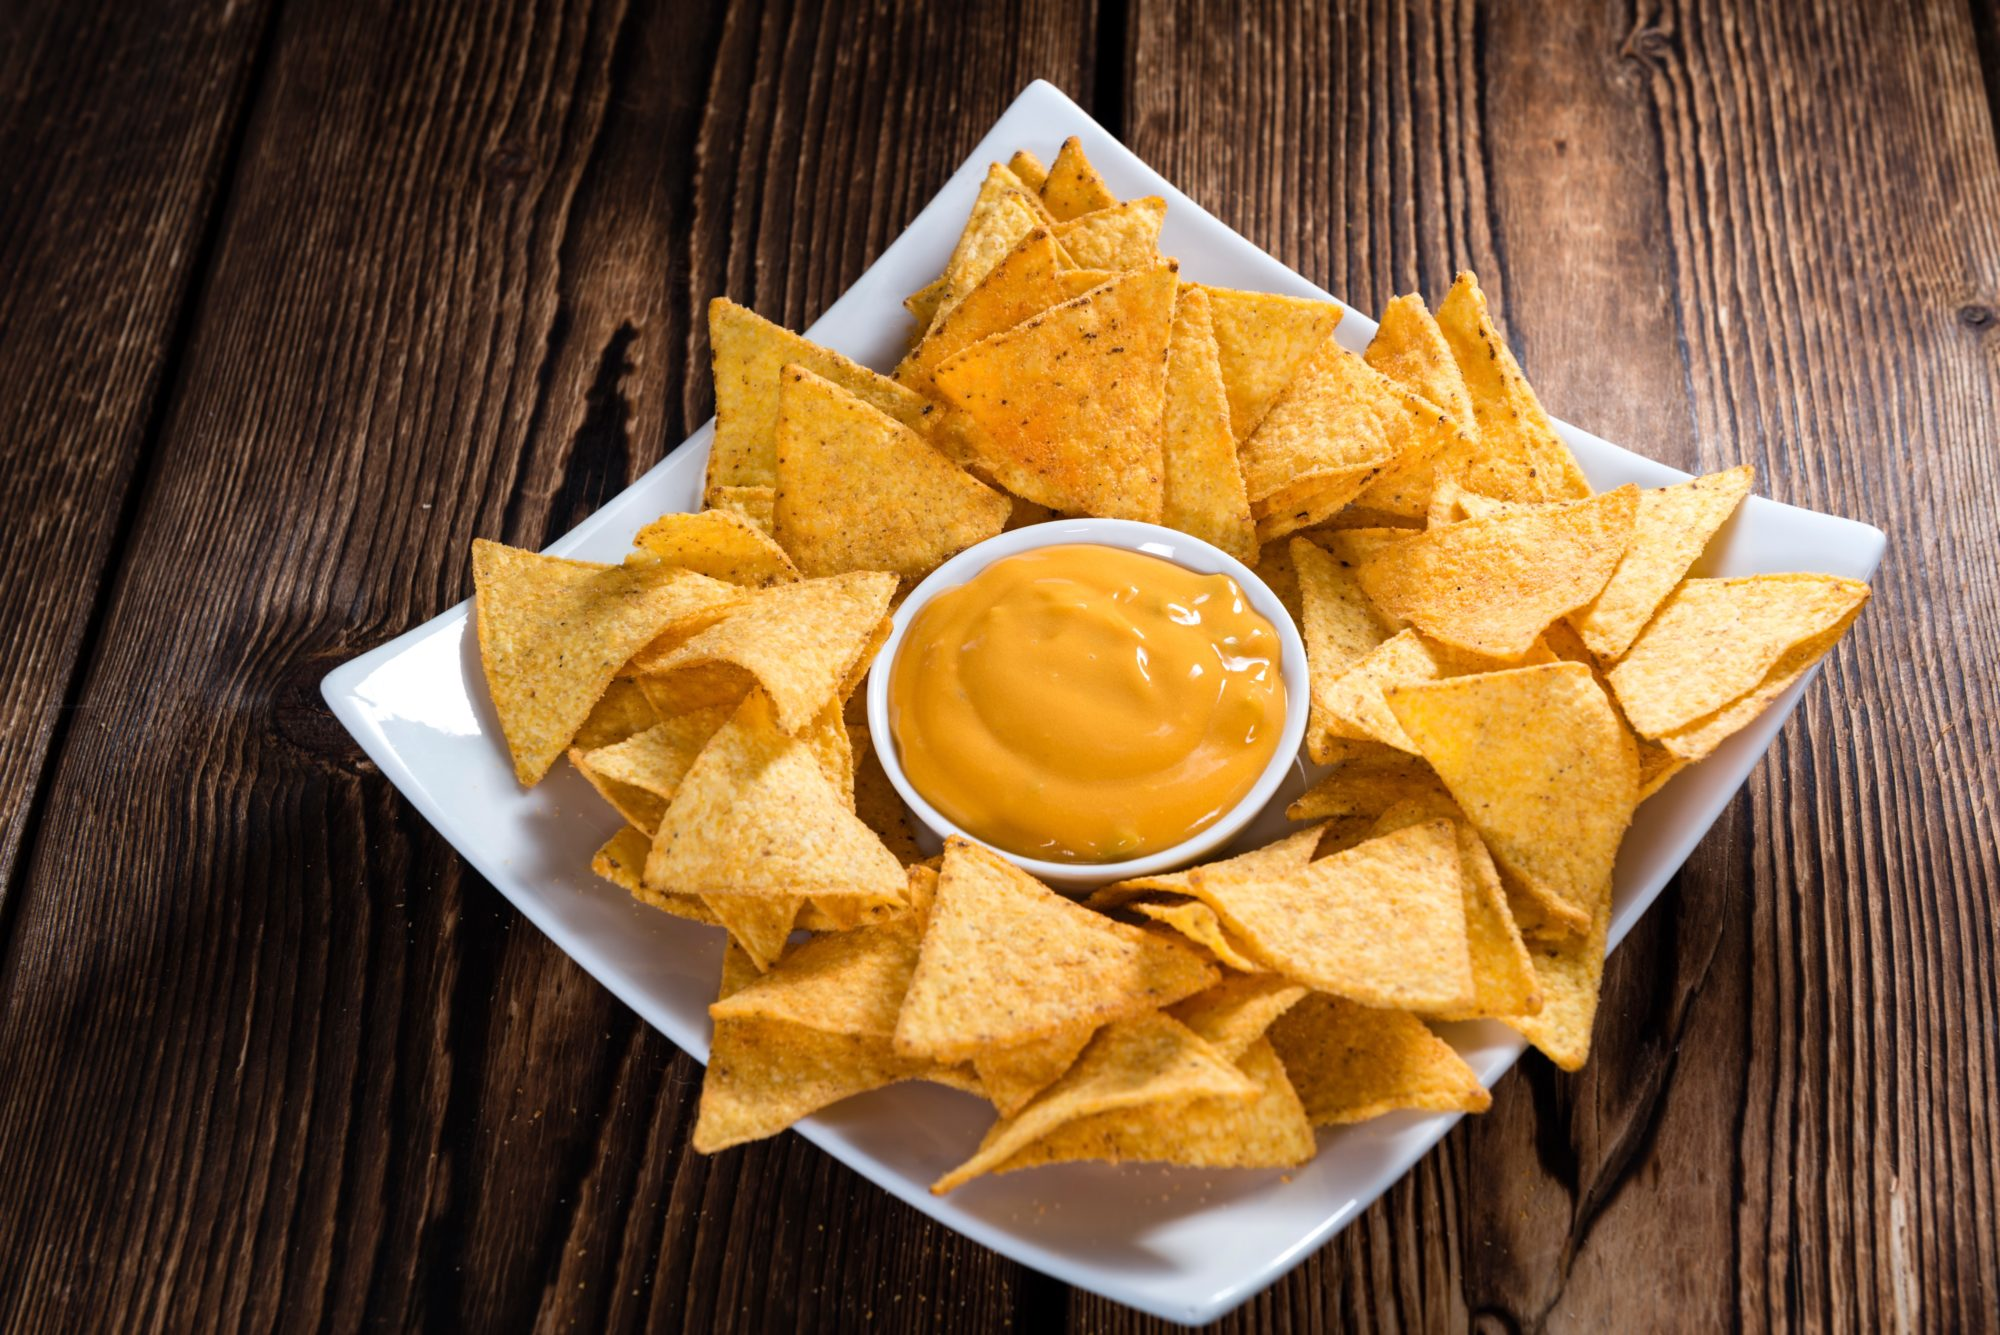 Weekly Roundup and crunch of chips